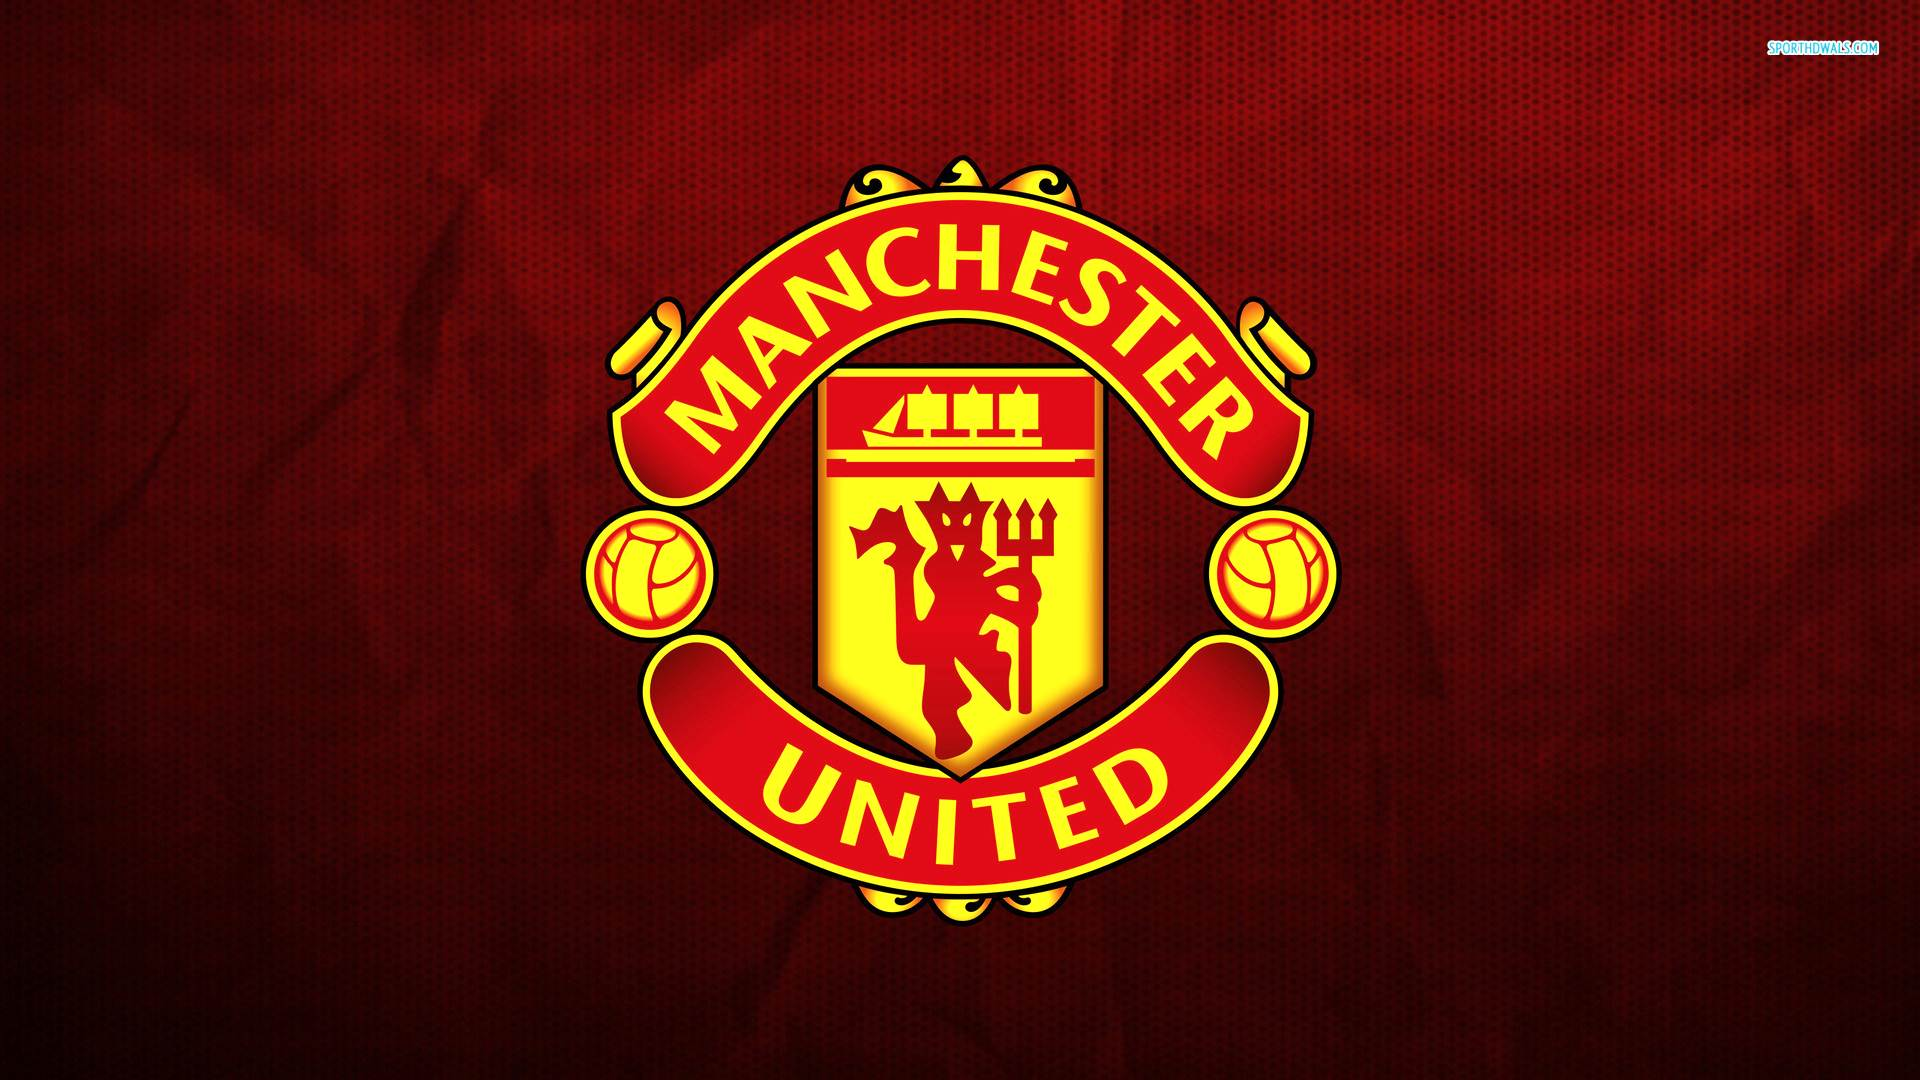 Manchester United Desktop 15374 Hd Wallpapers in Football   Imagesci 1920x1080